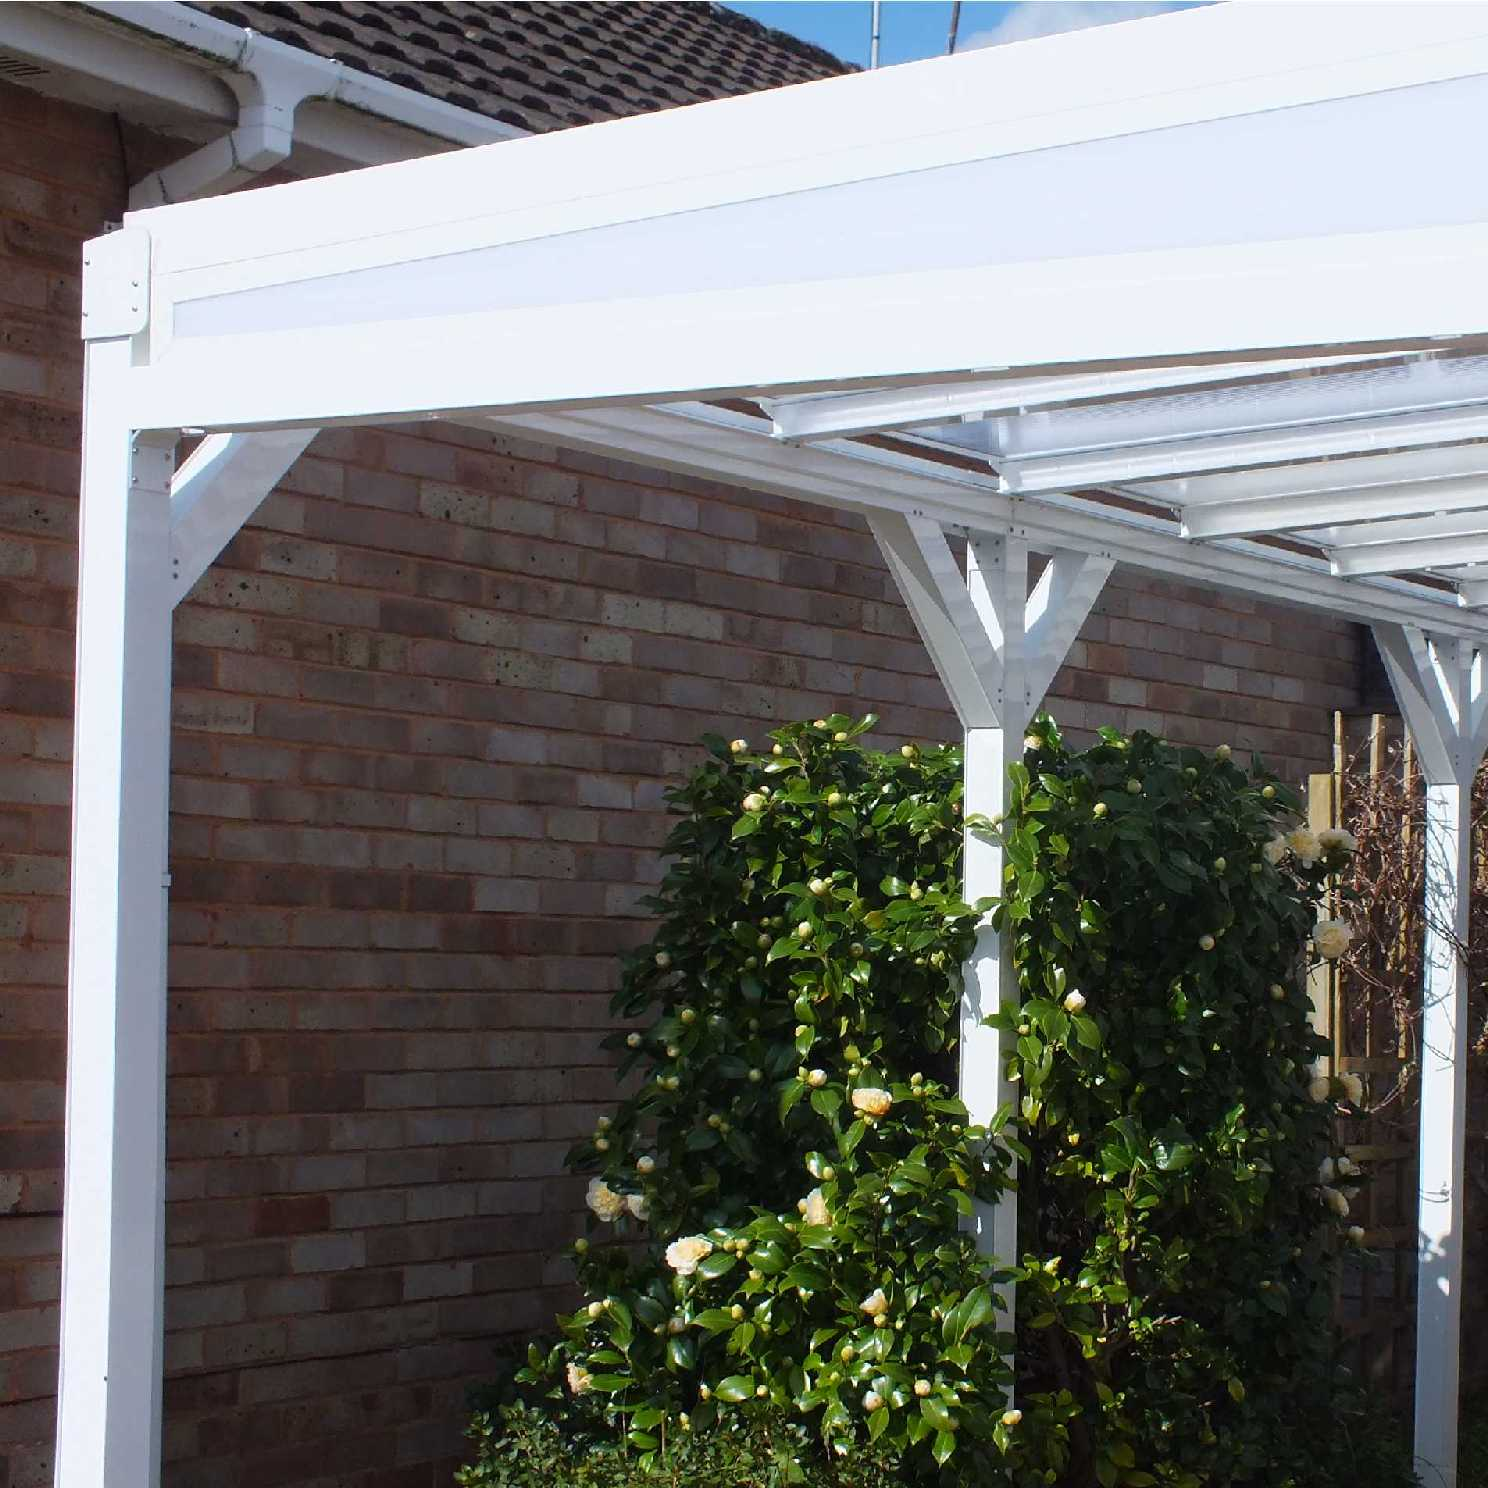 Omega Smart White Lean-To Canopy with 16mm Polycarbonate Glazing - 6.3m (W) x 2.5m (P), (4) Supporting Posts from Omega Build